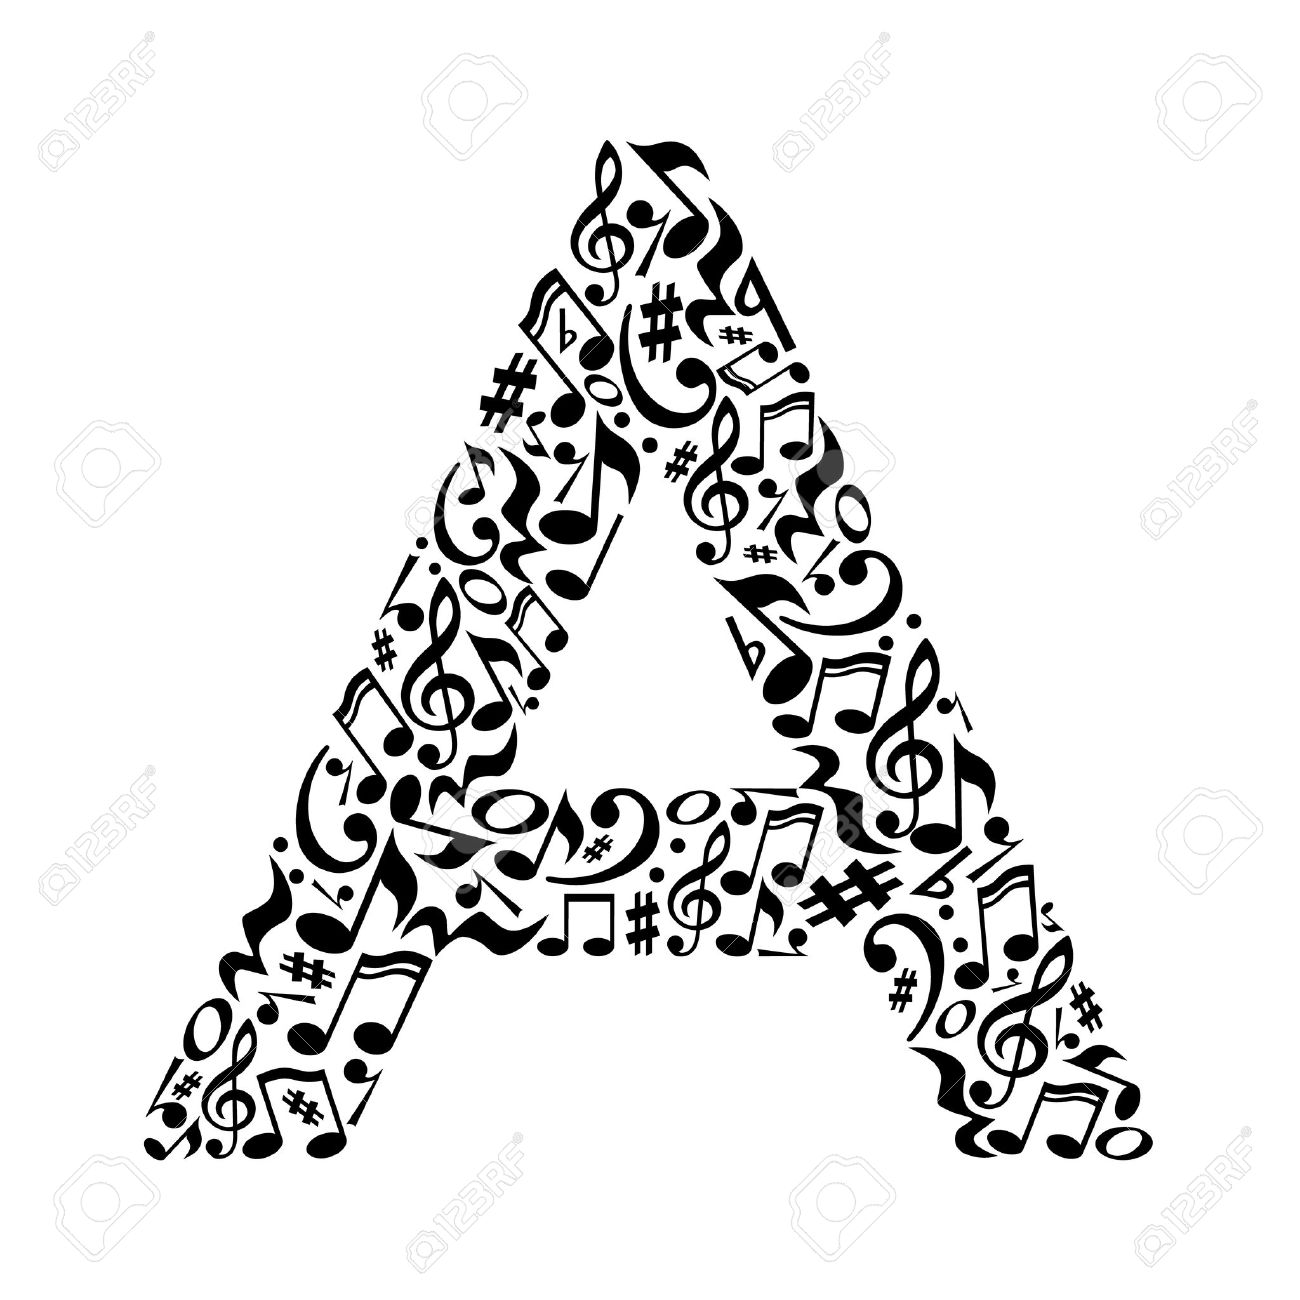 A Letter Made Of Musical Notes On White Background Alphabet For Art School Trendy